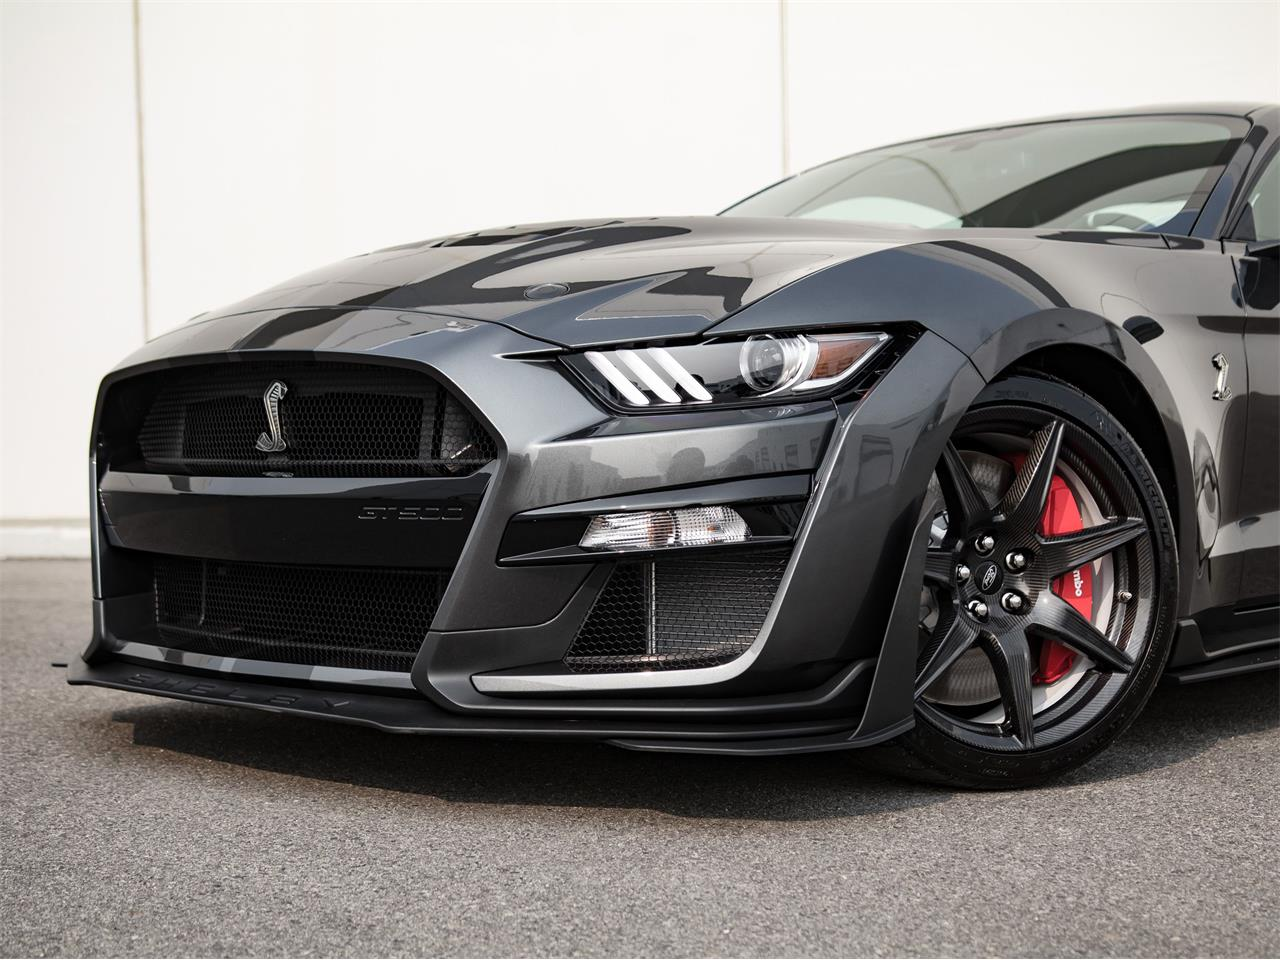 2020 Ford Mustang (CC-1391667) for sale in Kelowna, British Columbia